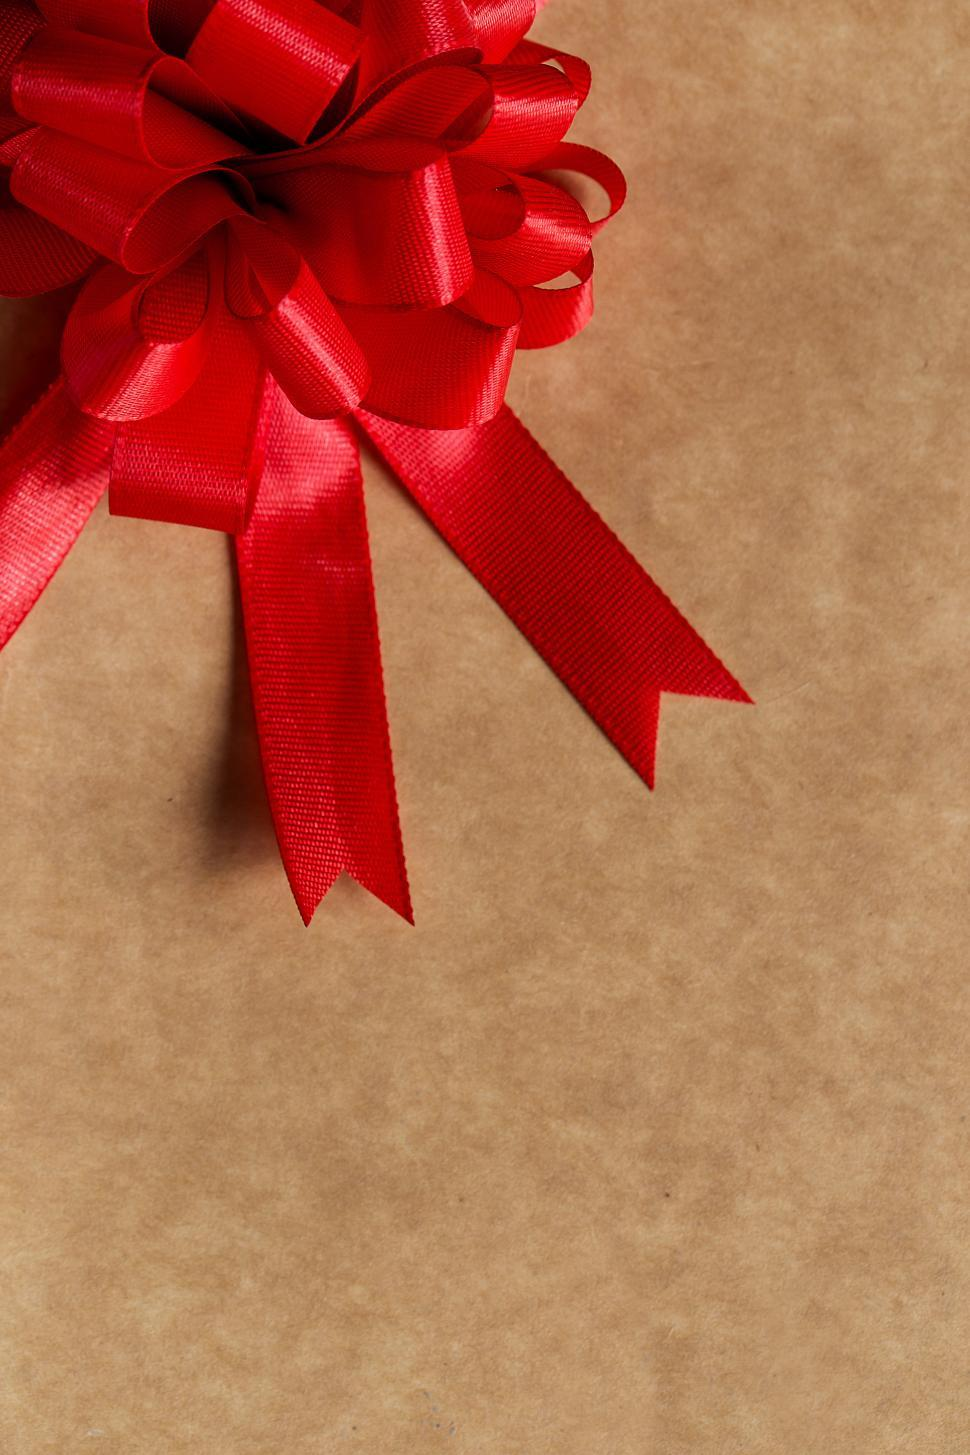 Download Free Stock Photo of Gift, celebration. Red, gorgeous bow on the table